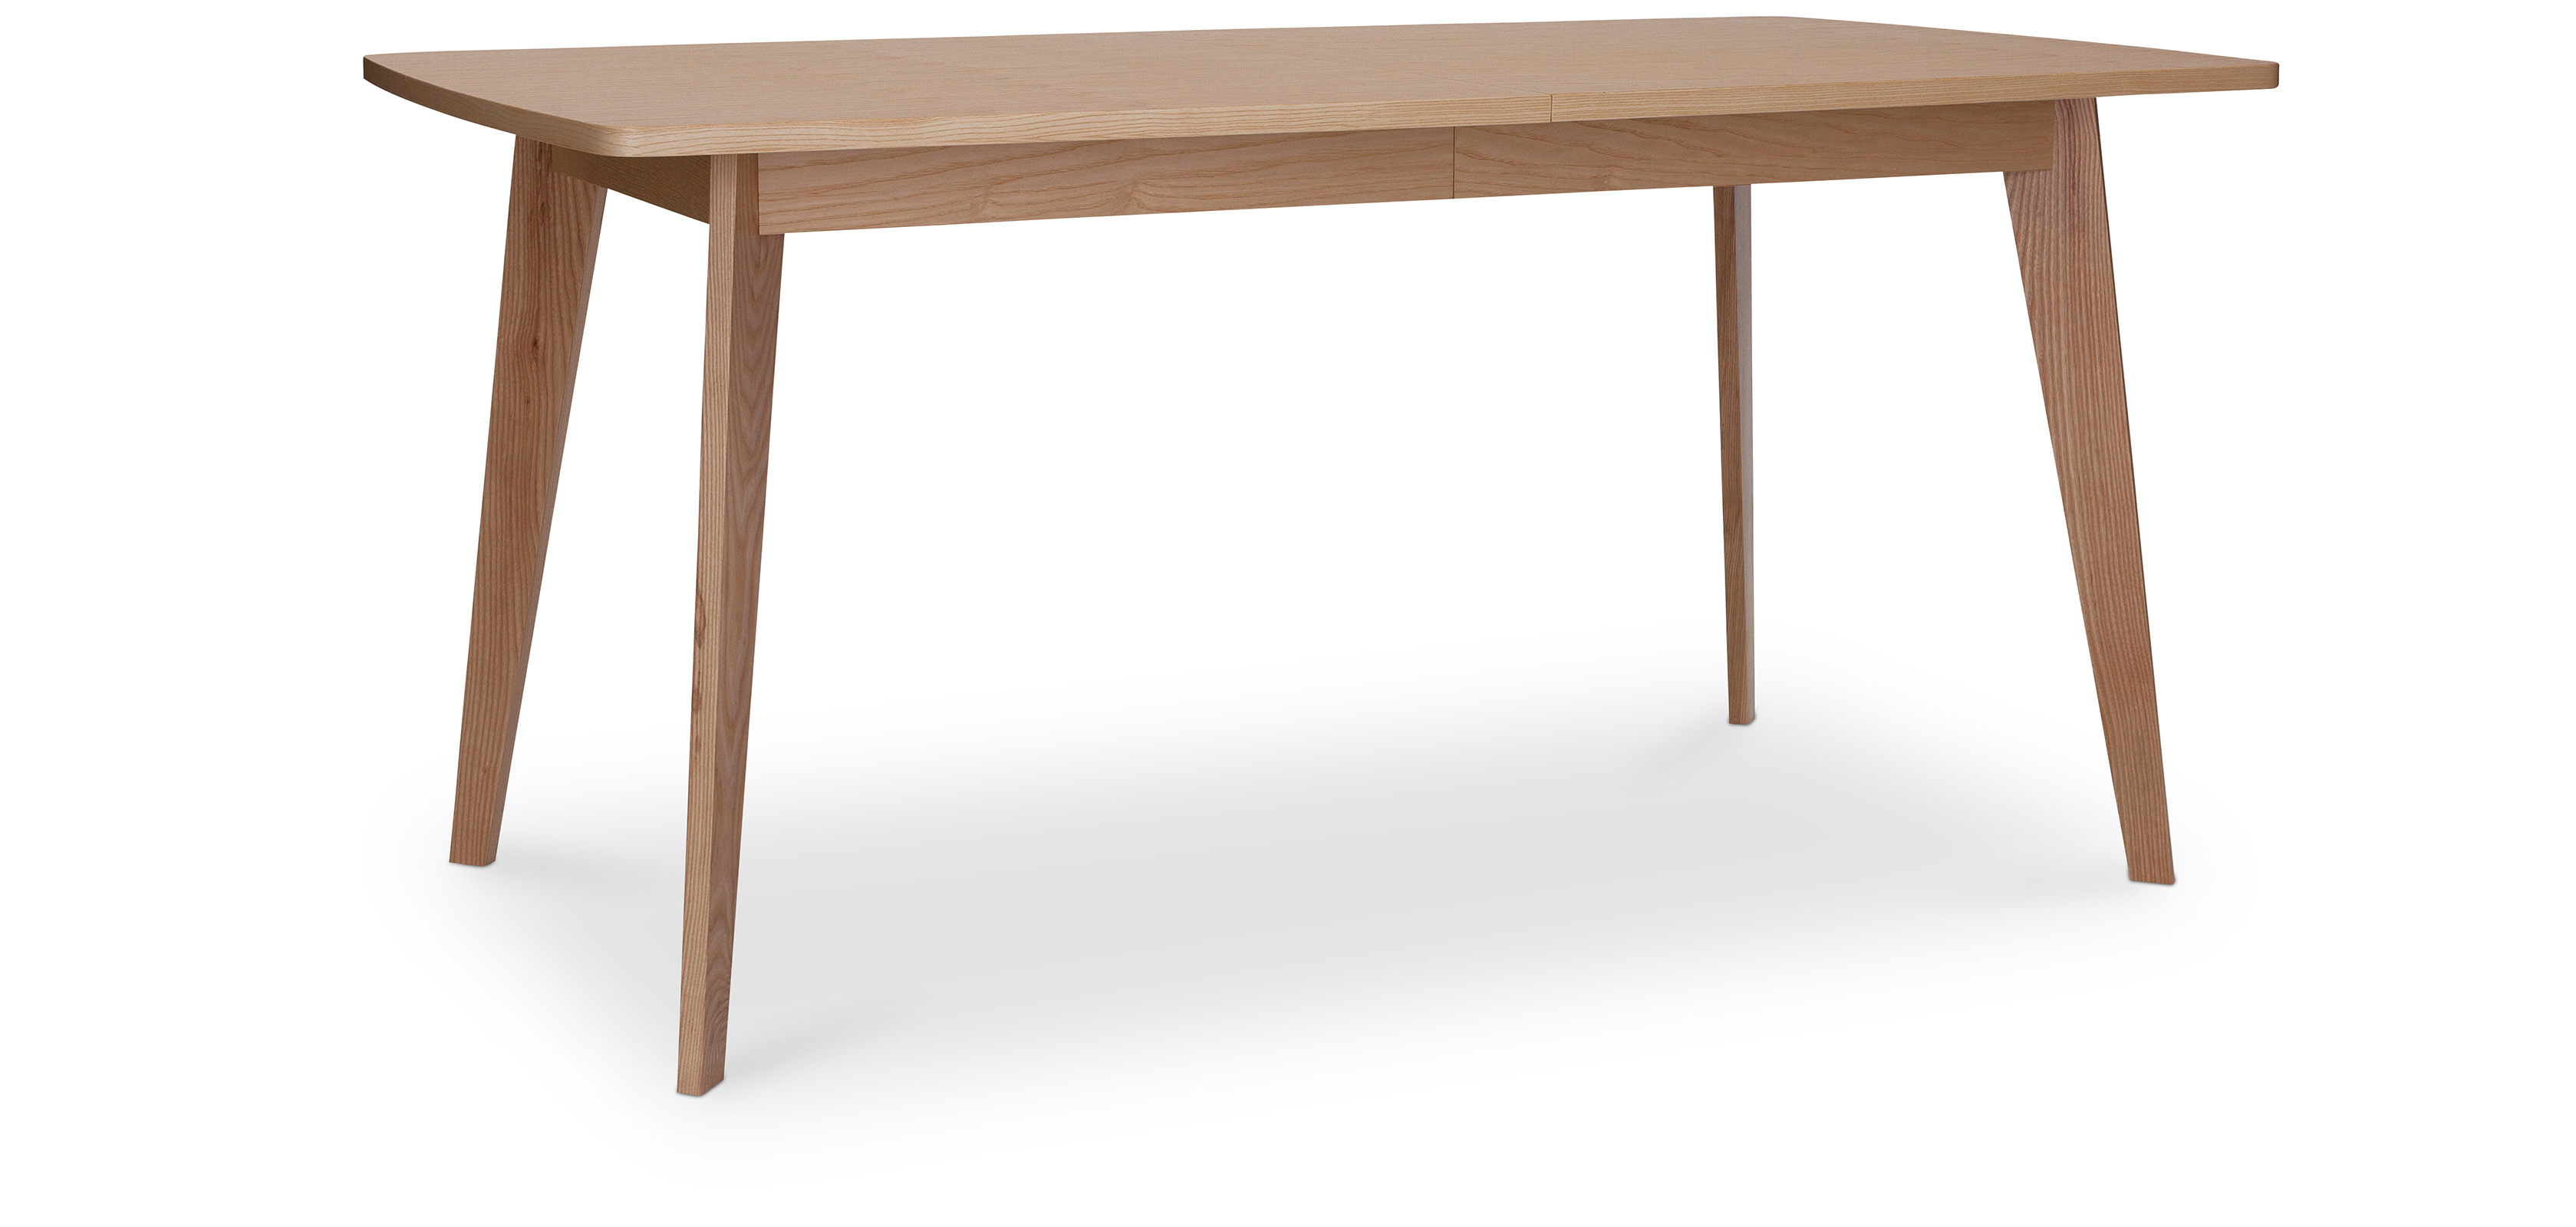 Table salle a manger scandinave maison design for Table salle a manger hanna but